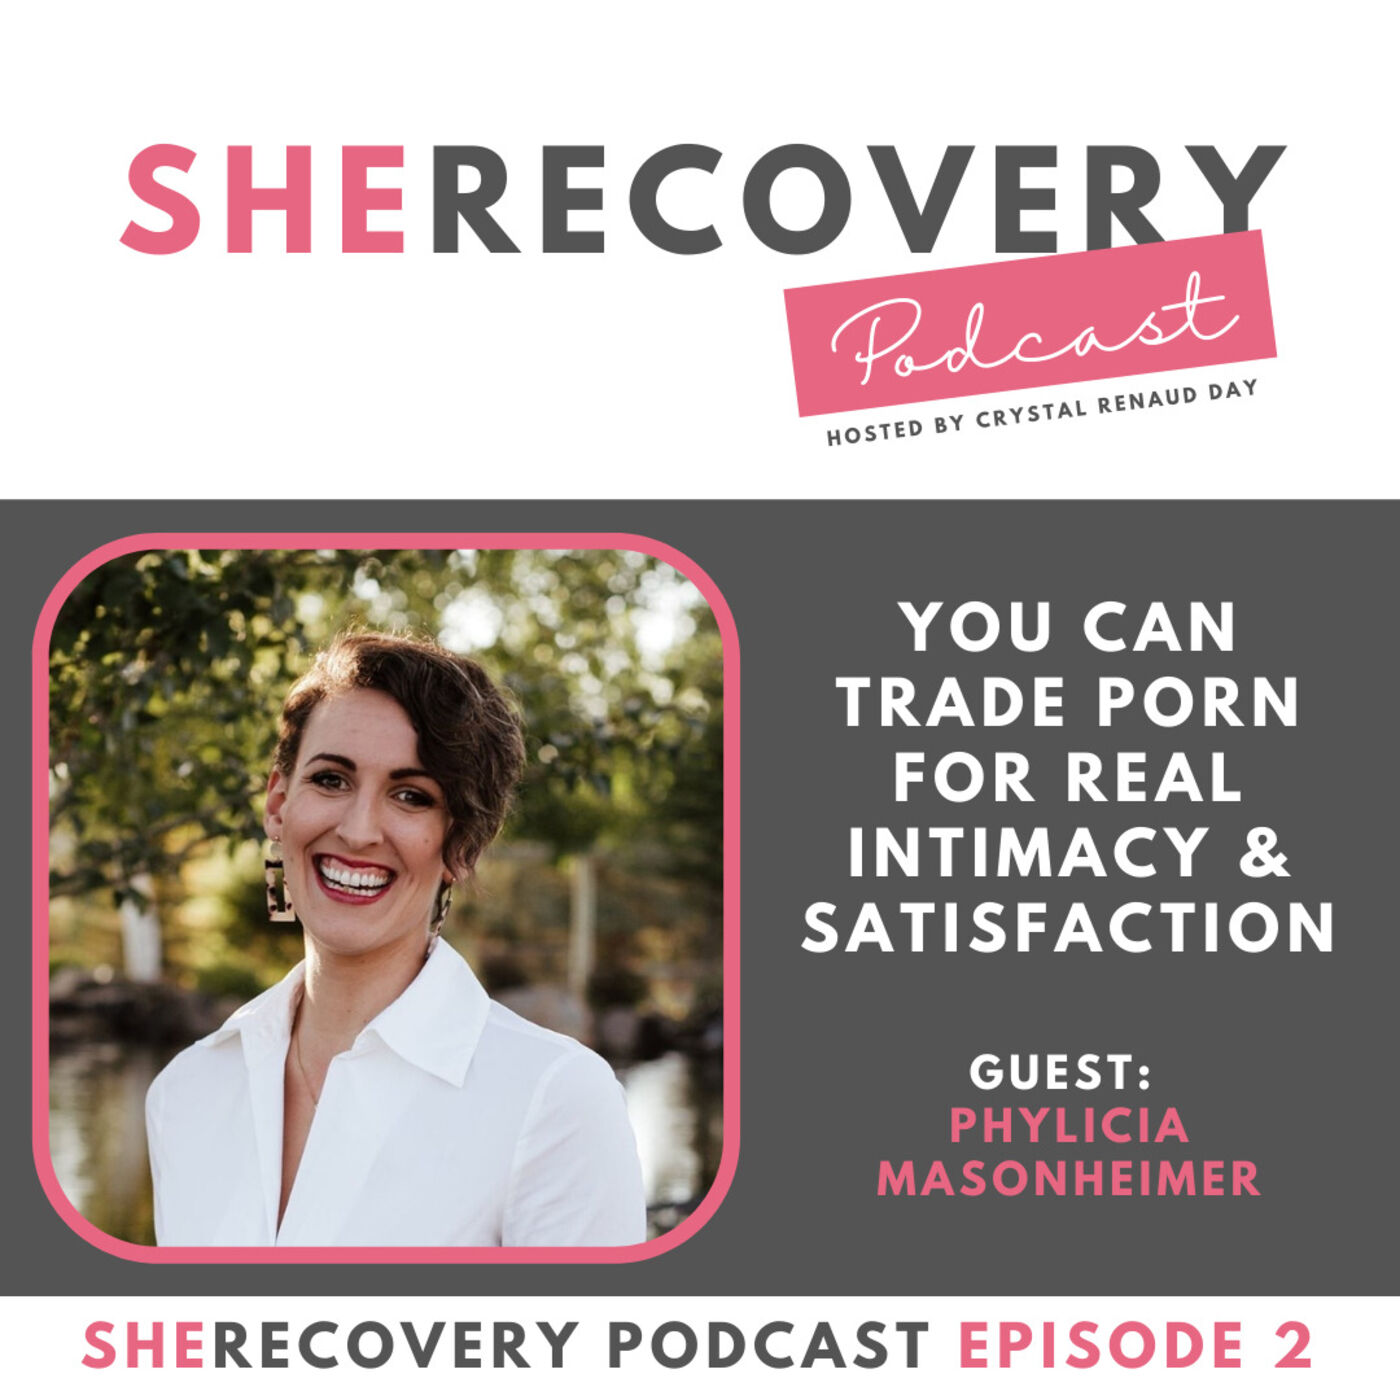 S1 E2: Phylicia Masonheimer - You Can Trade Porn for Real Intimacy & Satisfaction